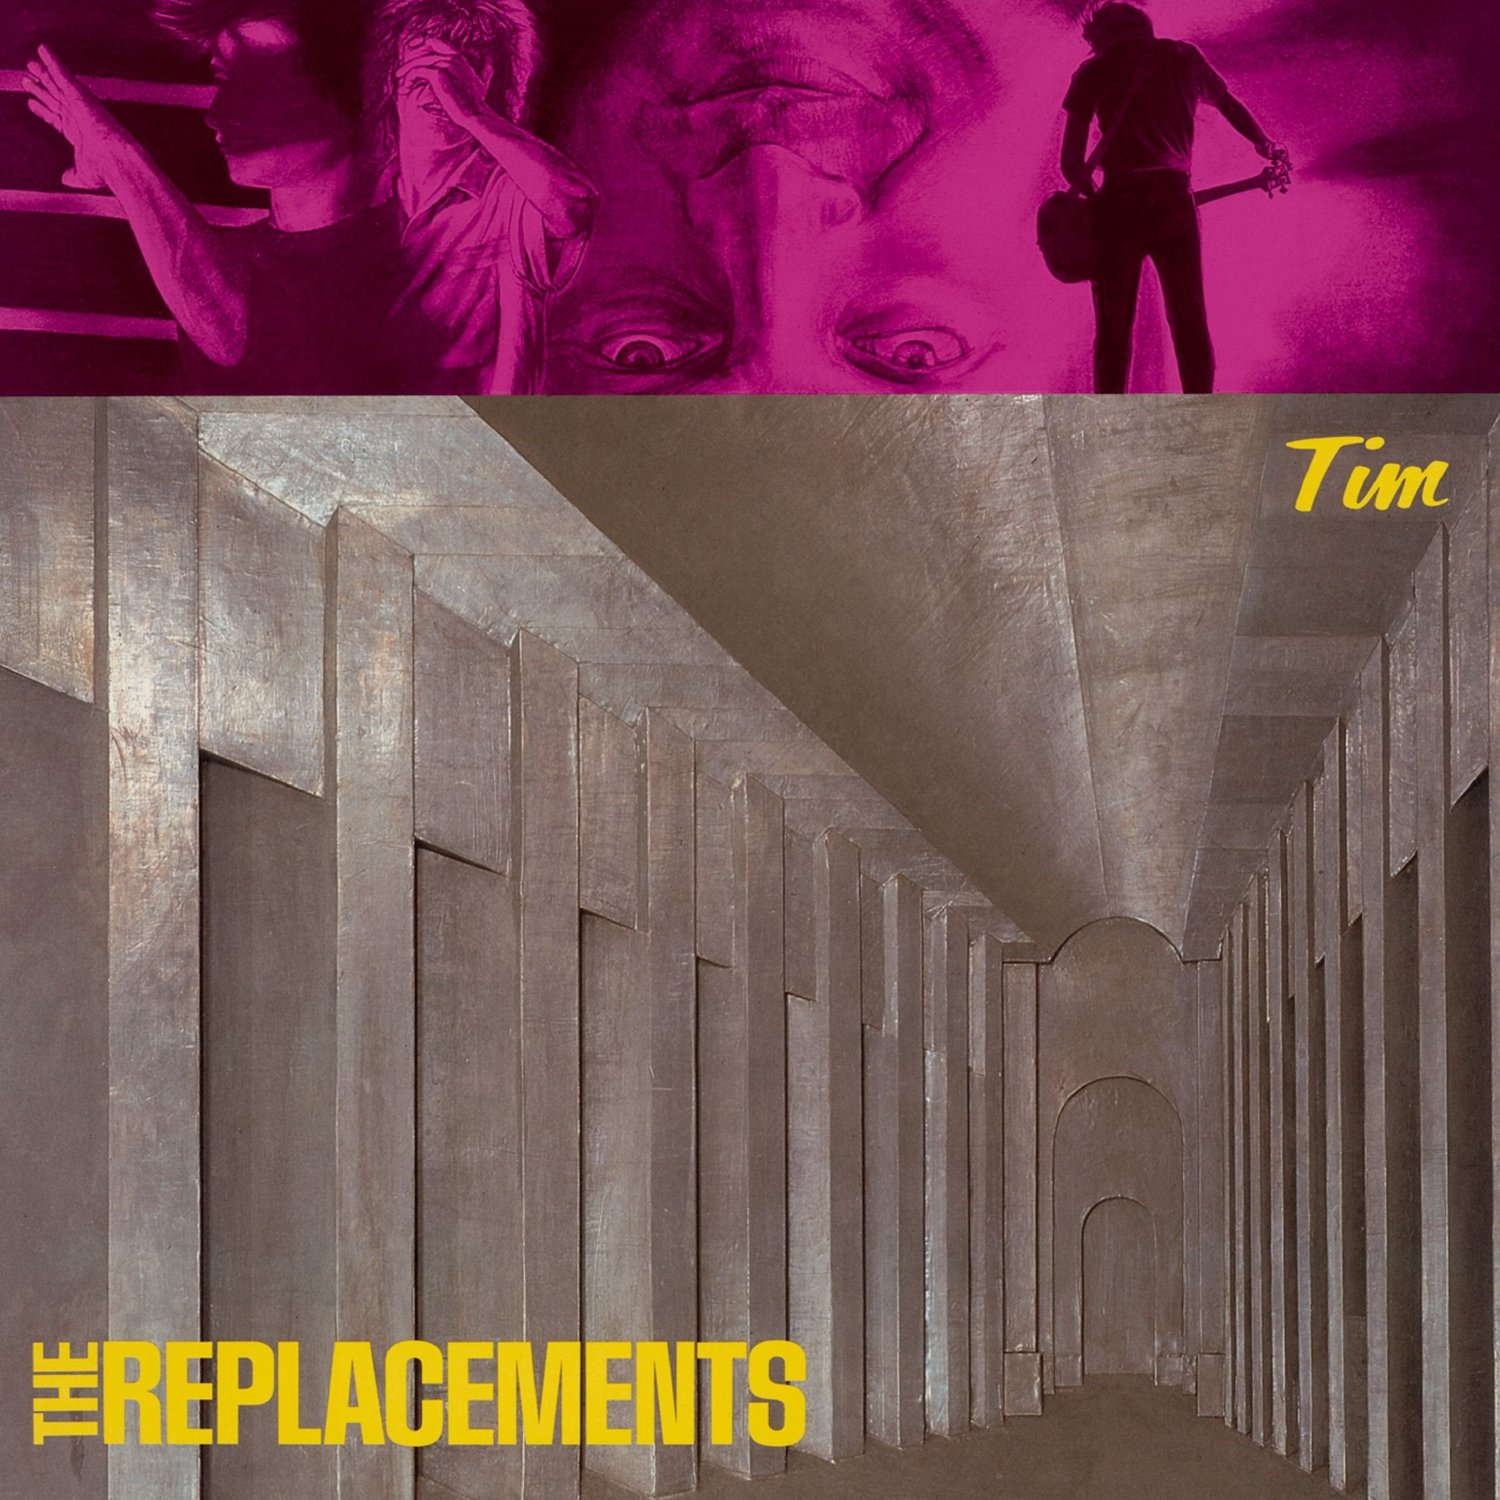 Show #104: The Replacements' Tim